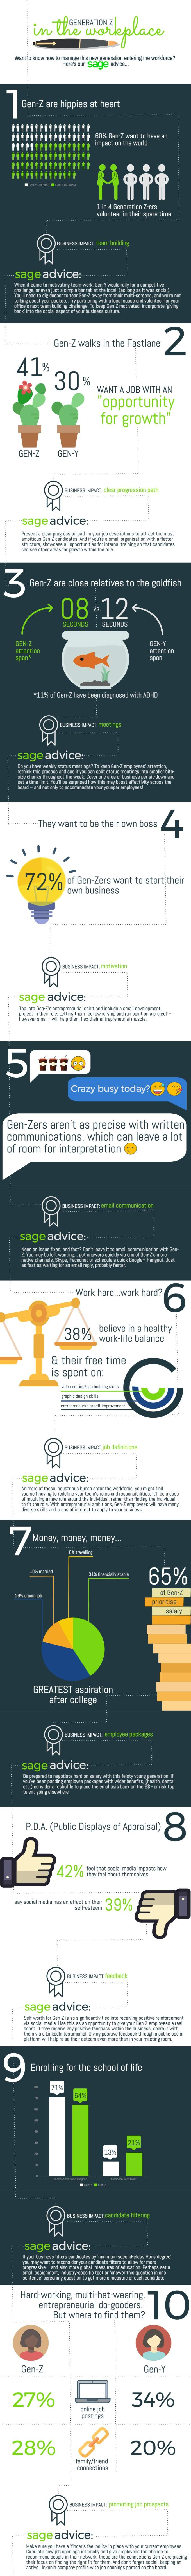 Sage Gen-Z in the Workplace - Infographic design FINAL 29.06.2017 (1)